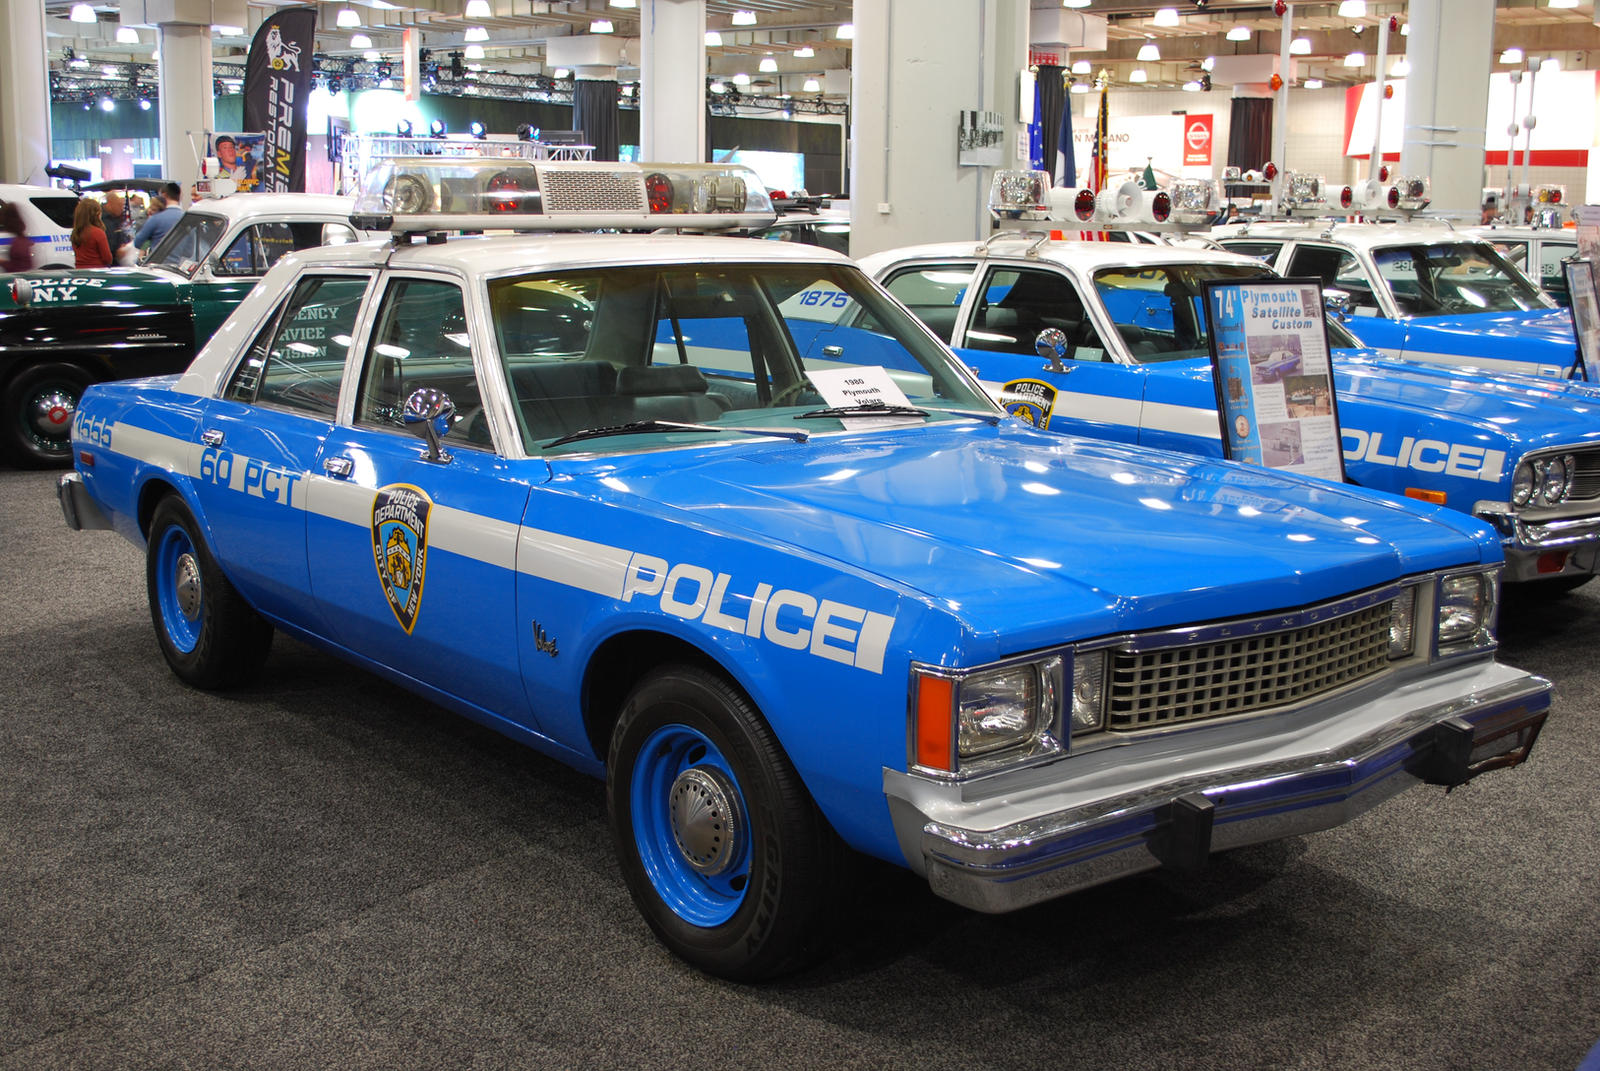 1980 Plymouth Volare Nypd Police Car Ii By Hardrocker78